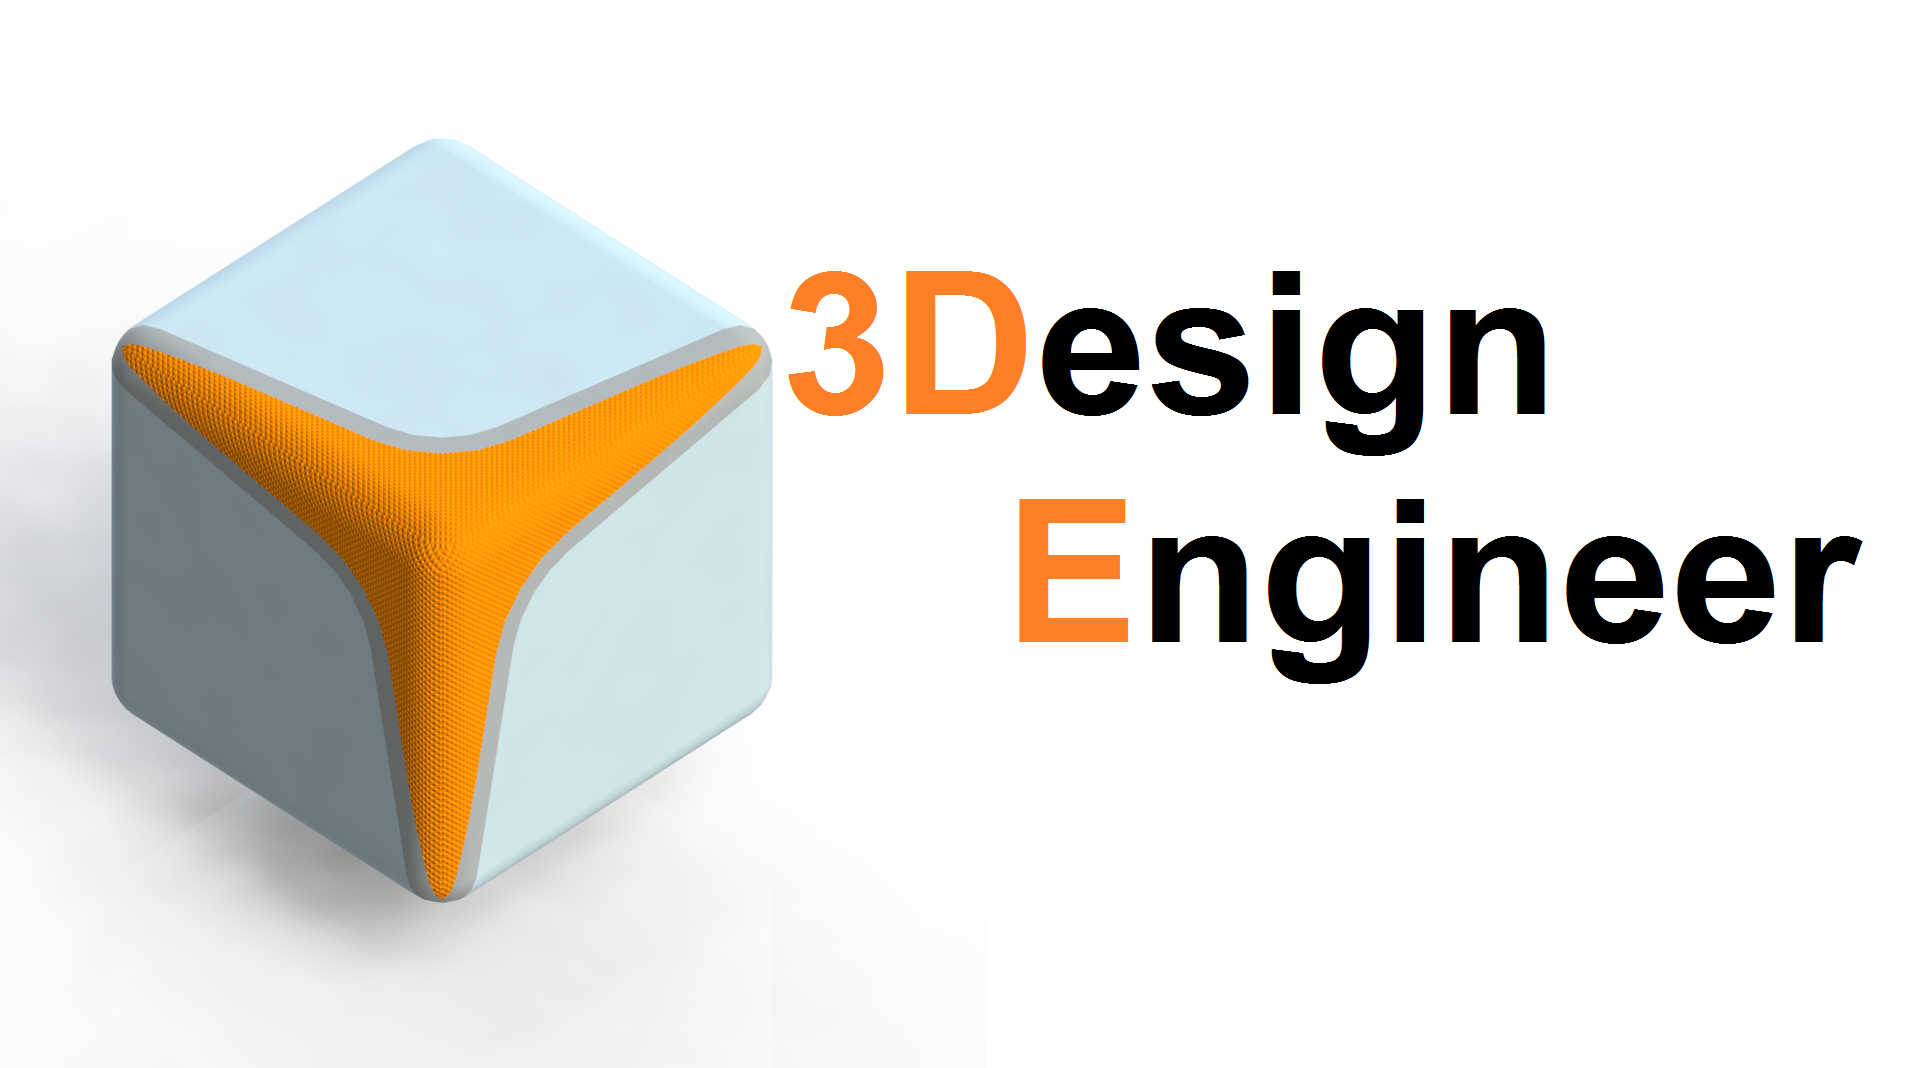 3D Design Engineer